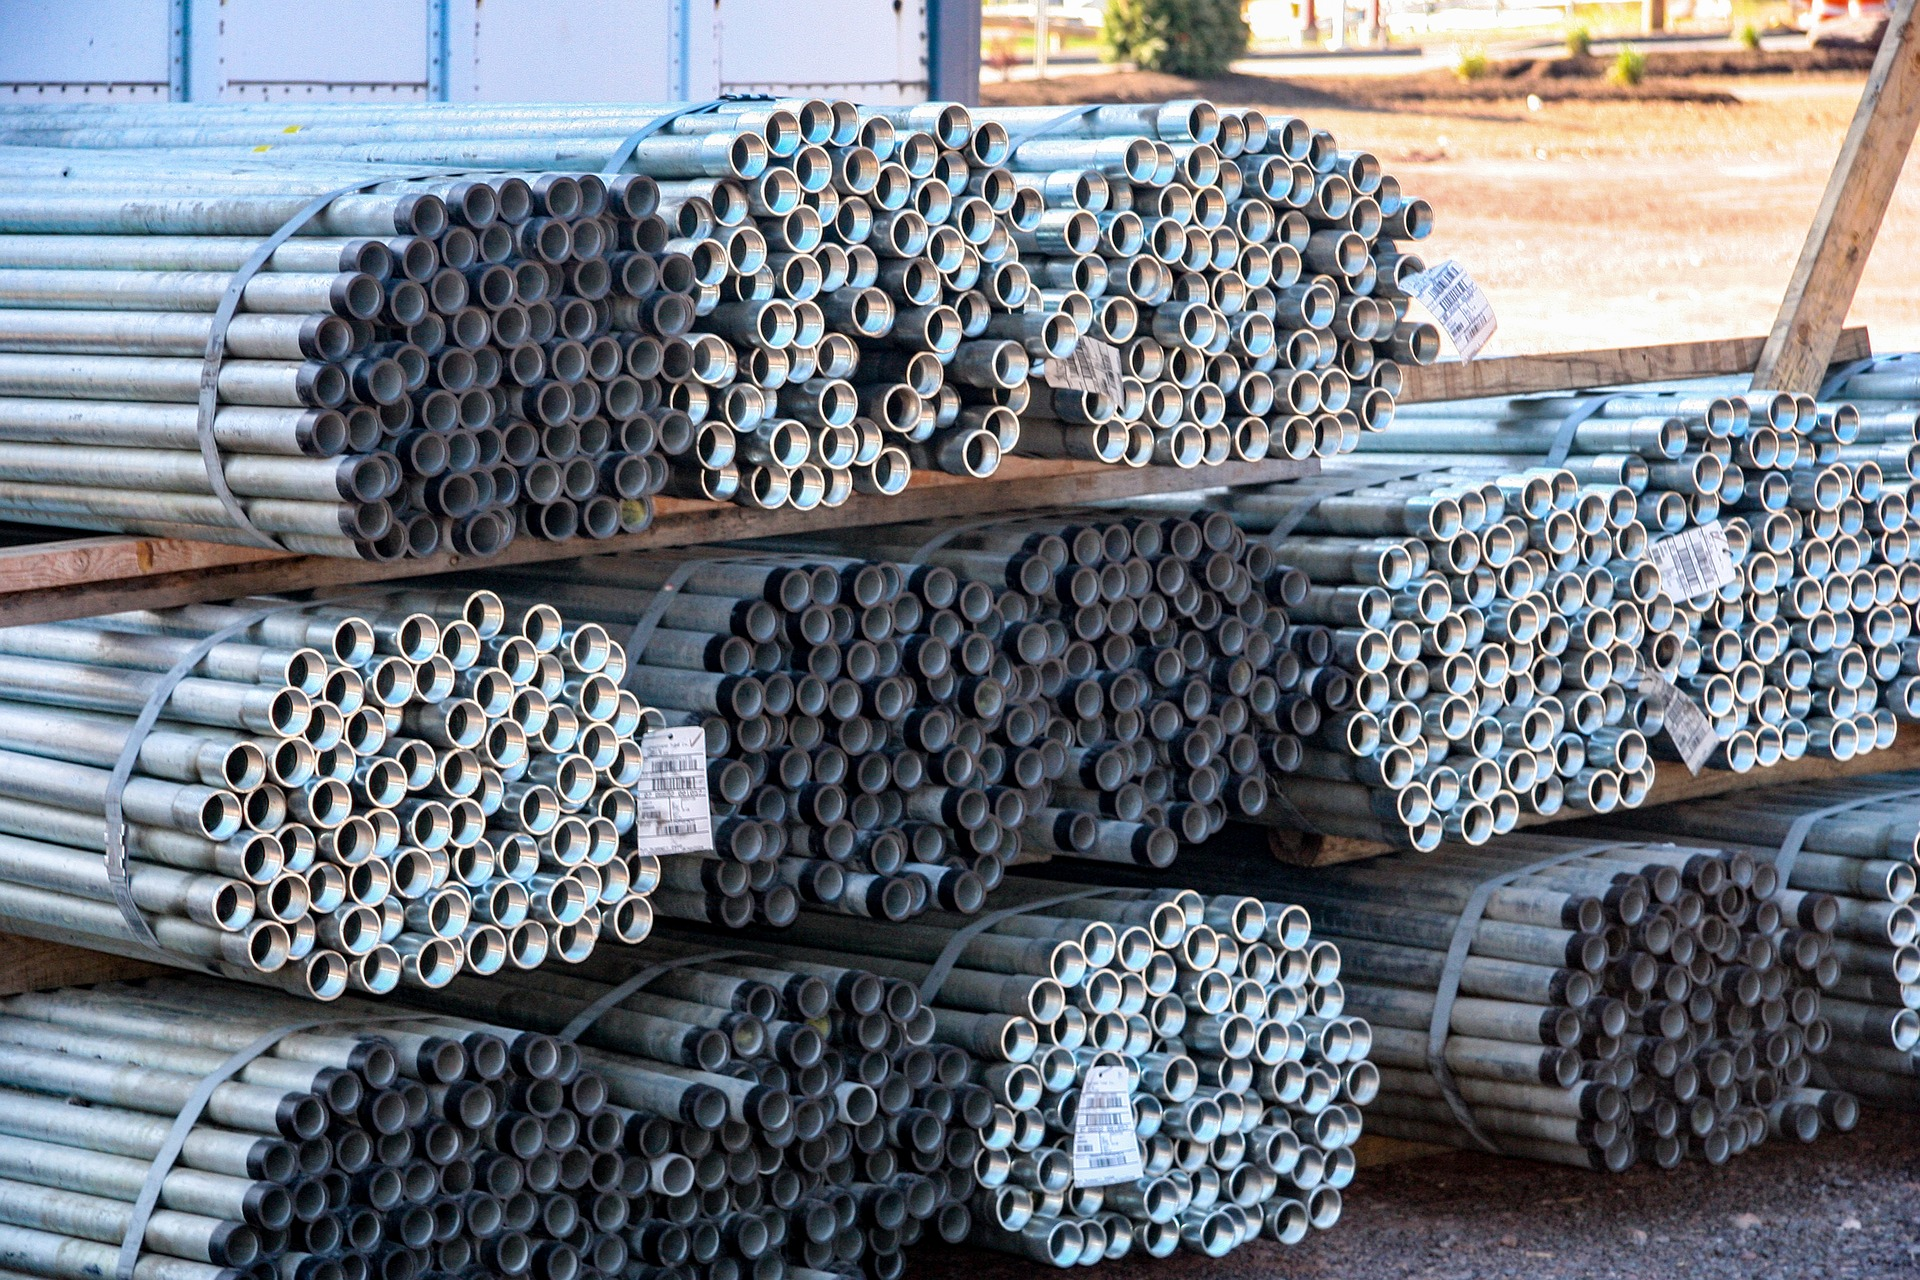 stainless steel pipes.jpg